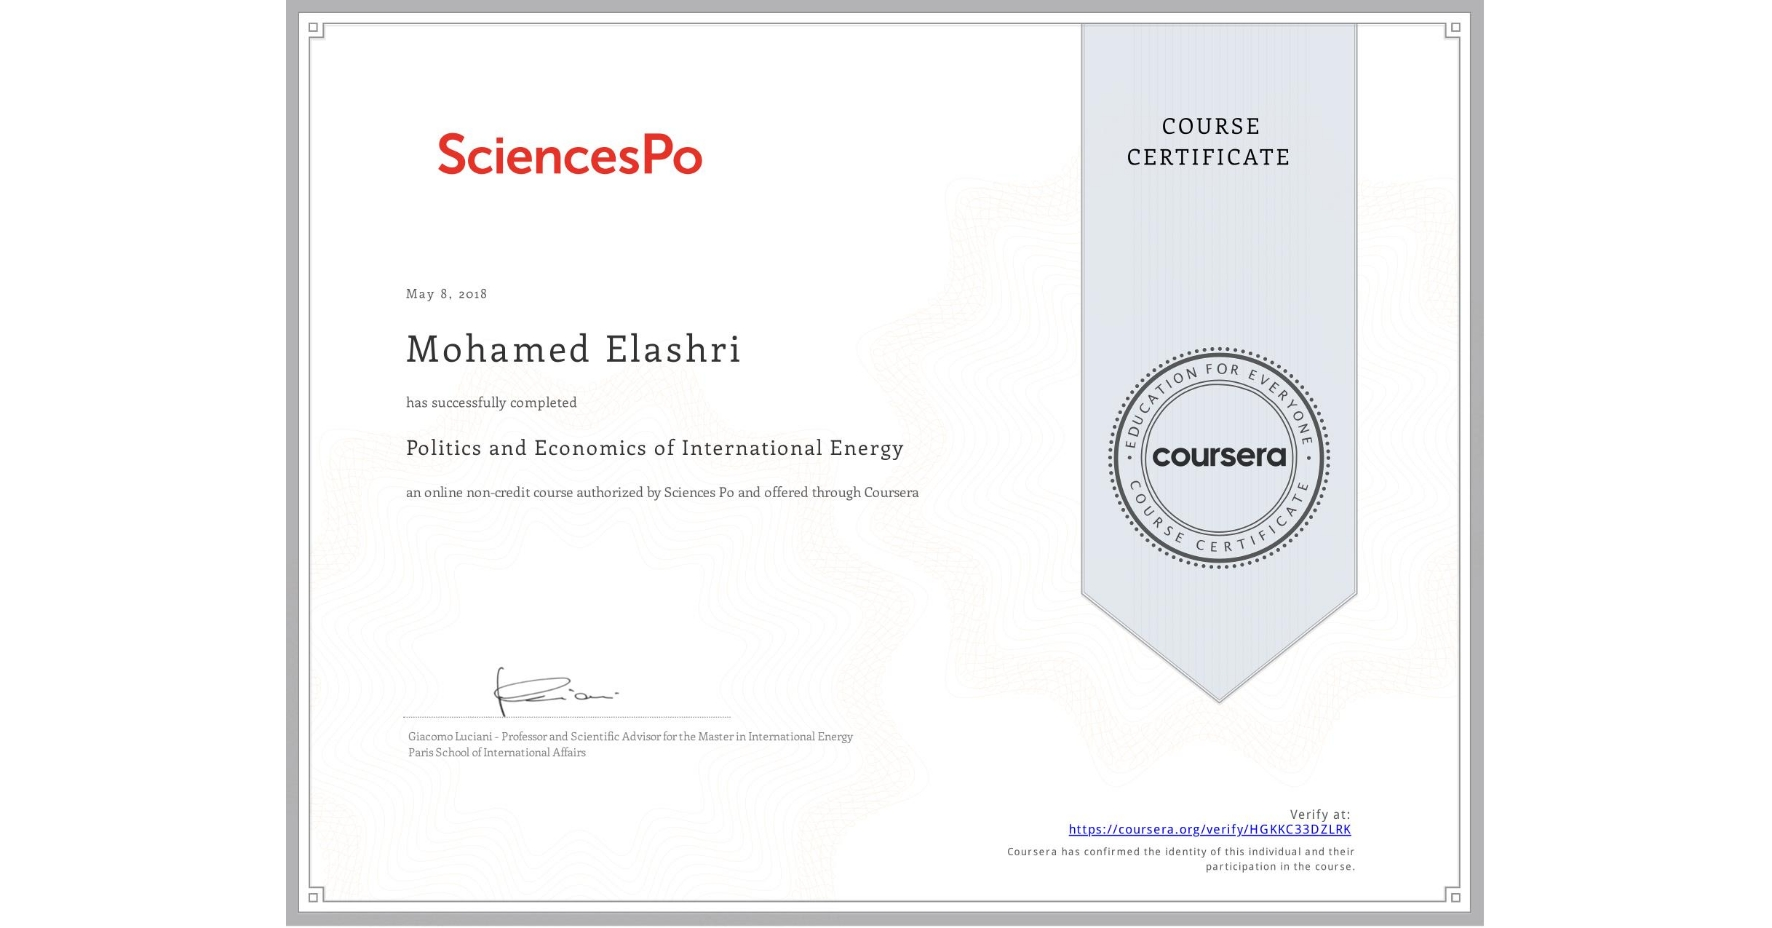 View certificate for Mohamed Elashri, Politics and Economics of International Energy, an online non-credit course authorized by Sciences Po and offered through Coursera